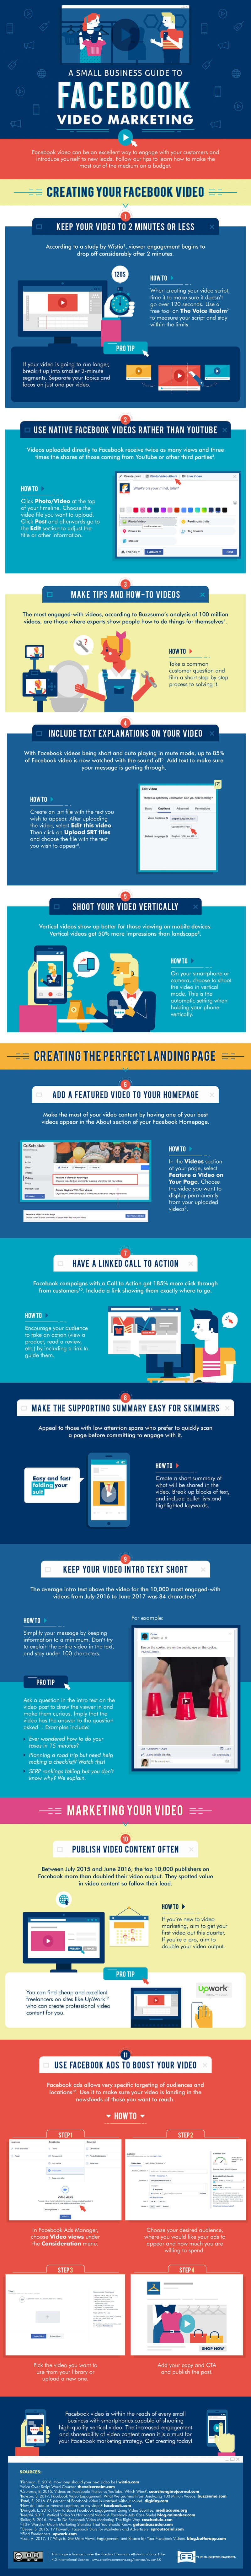 Top Tips to Create Facebook Videos to Market Your Business (Infographic)